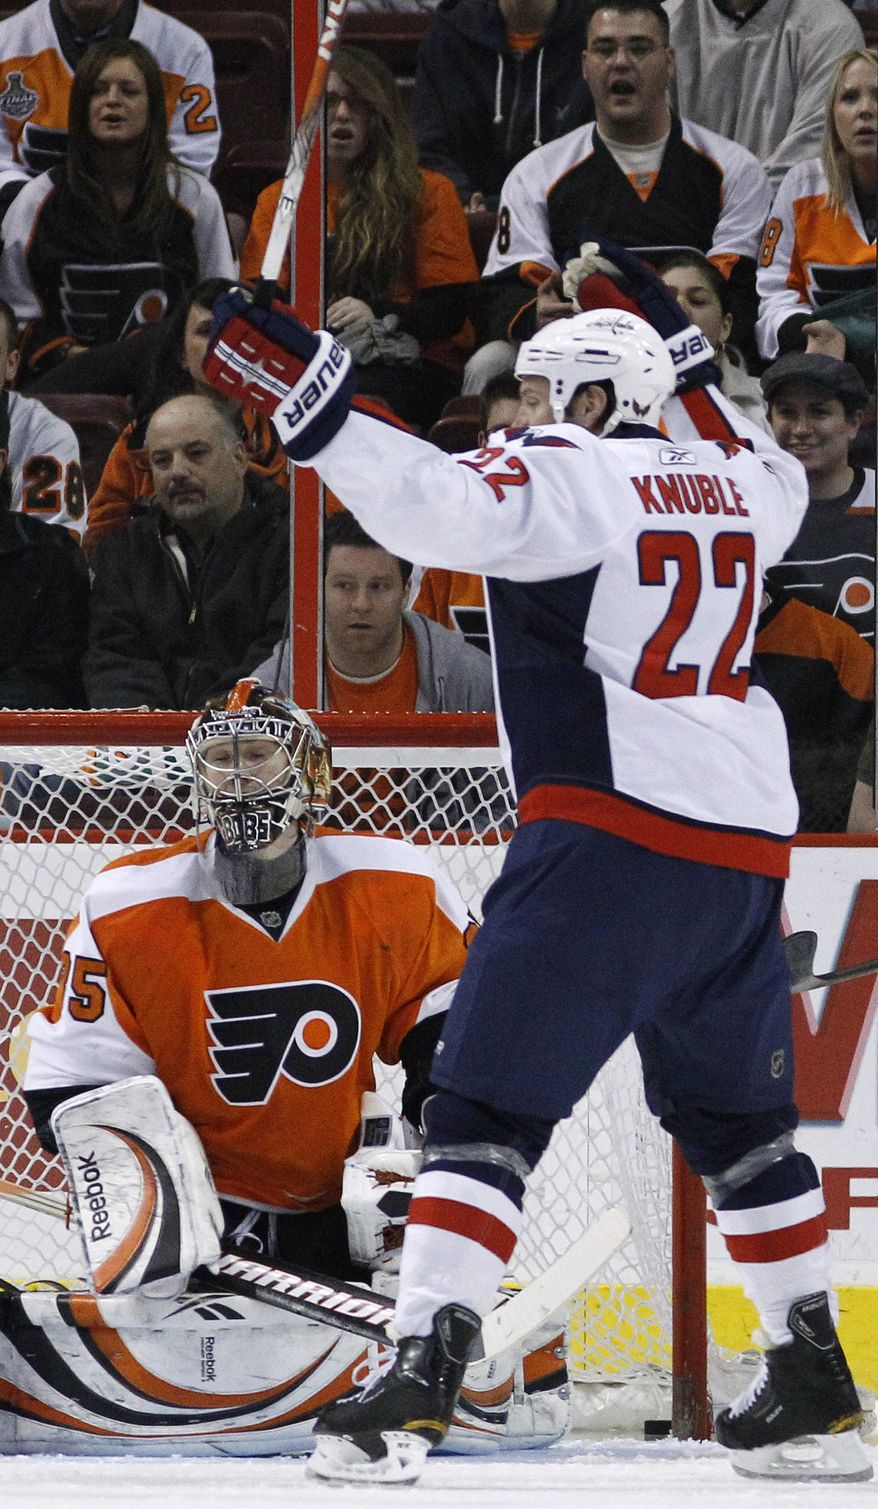 Washington Capitals' Mike Knuble (22) celebrates a goal by teammate Dennis Wideman, not pictured, against Philadelphia Flyers' Sergei Bobrovsky (35), of Russia, in the second period of an NHL hockey game, Tuesday, March 22, 2011, in Philadelphia. (AP Photo/Matt Slocum)